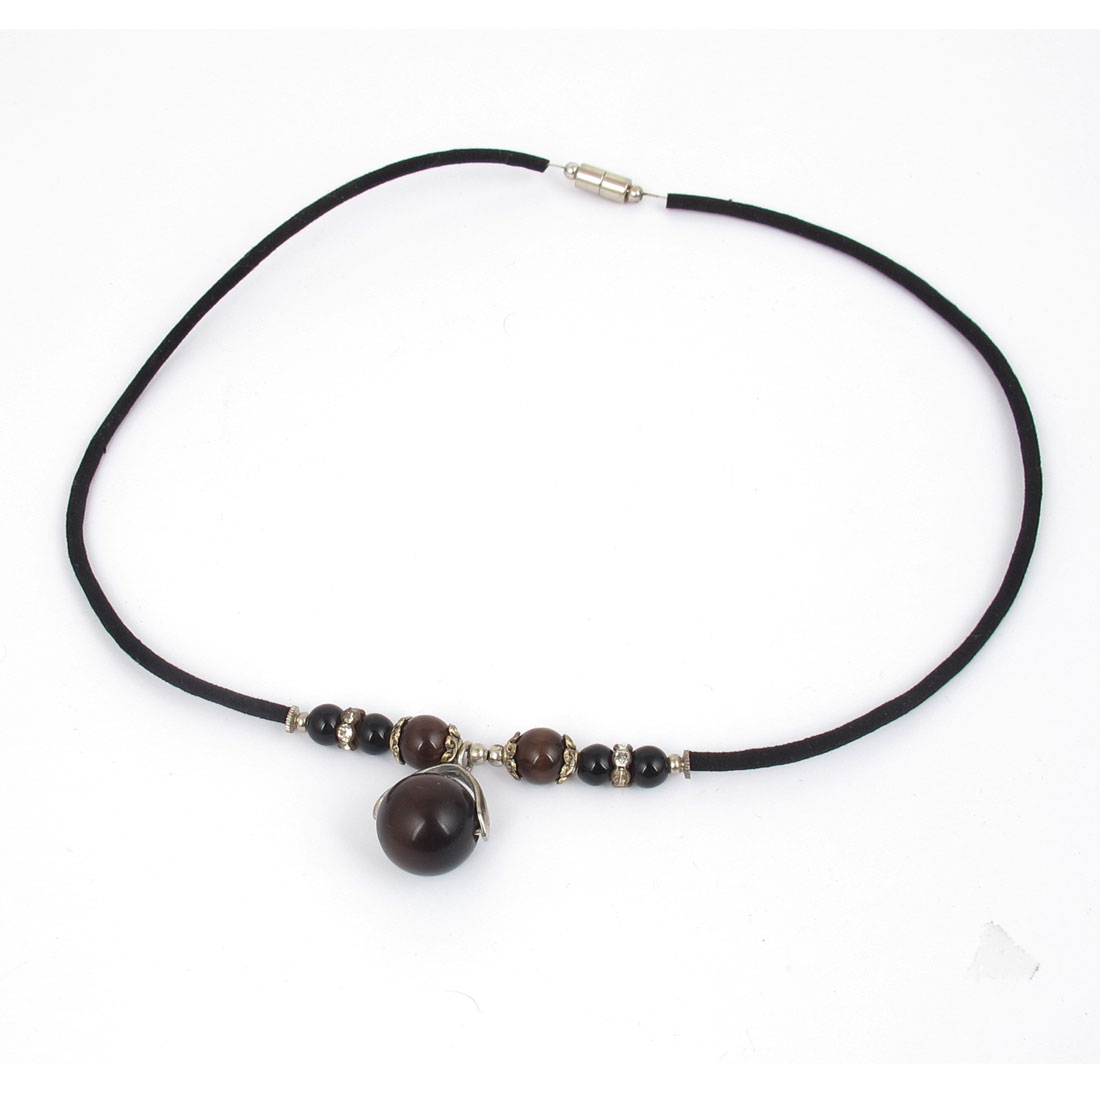 14mm OD Round Opal Bead Accent Neck Ornament Necklace Black for Women